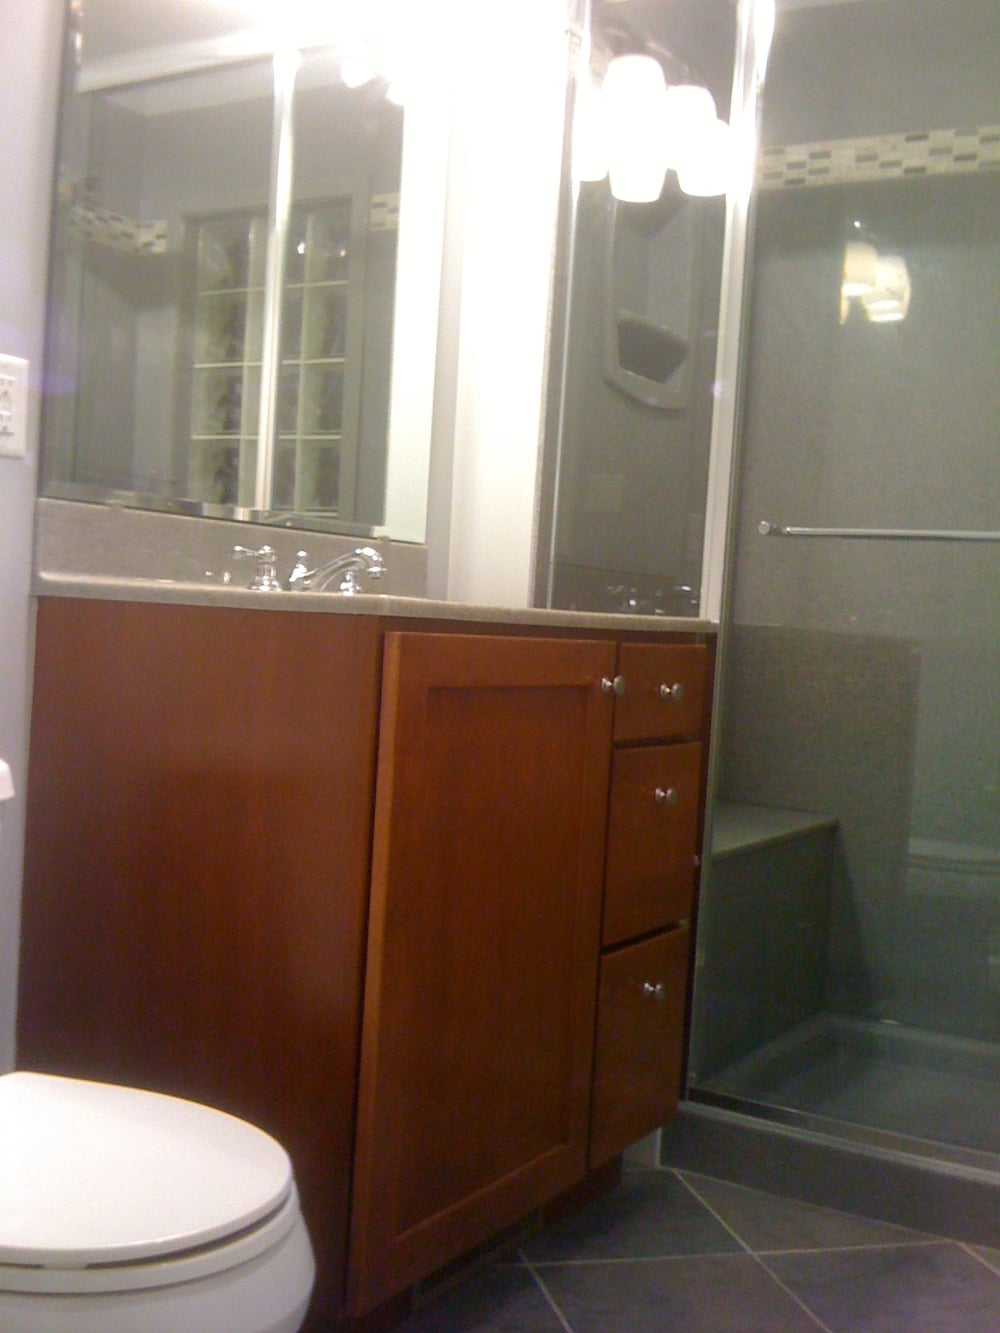 Brassfield Bath 2 New Look 1.JPG